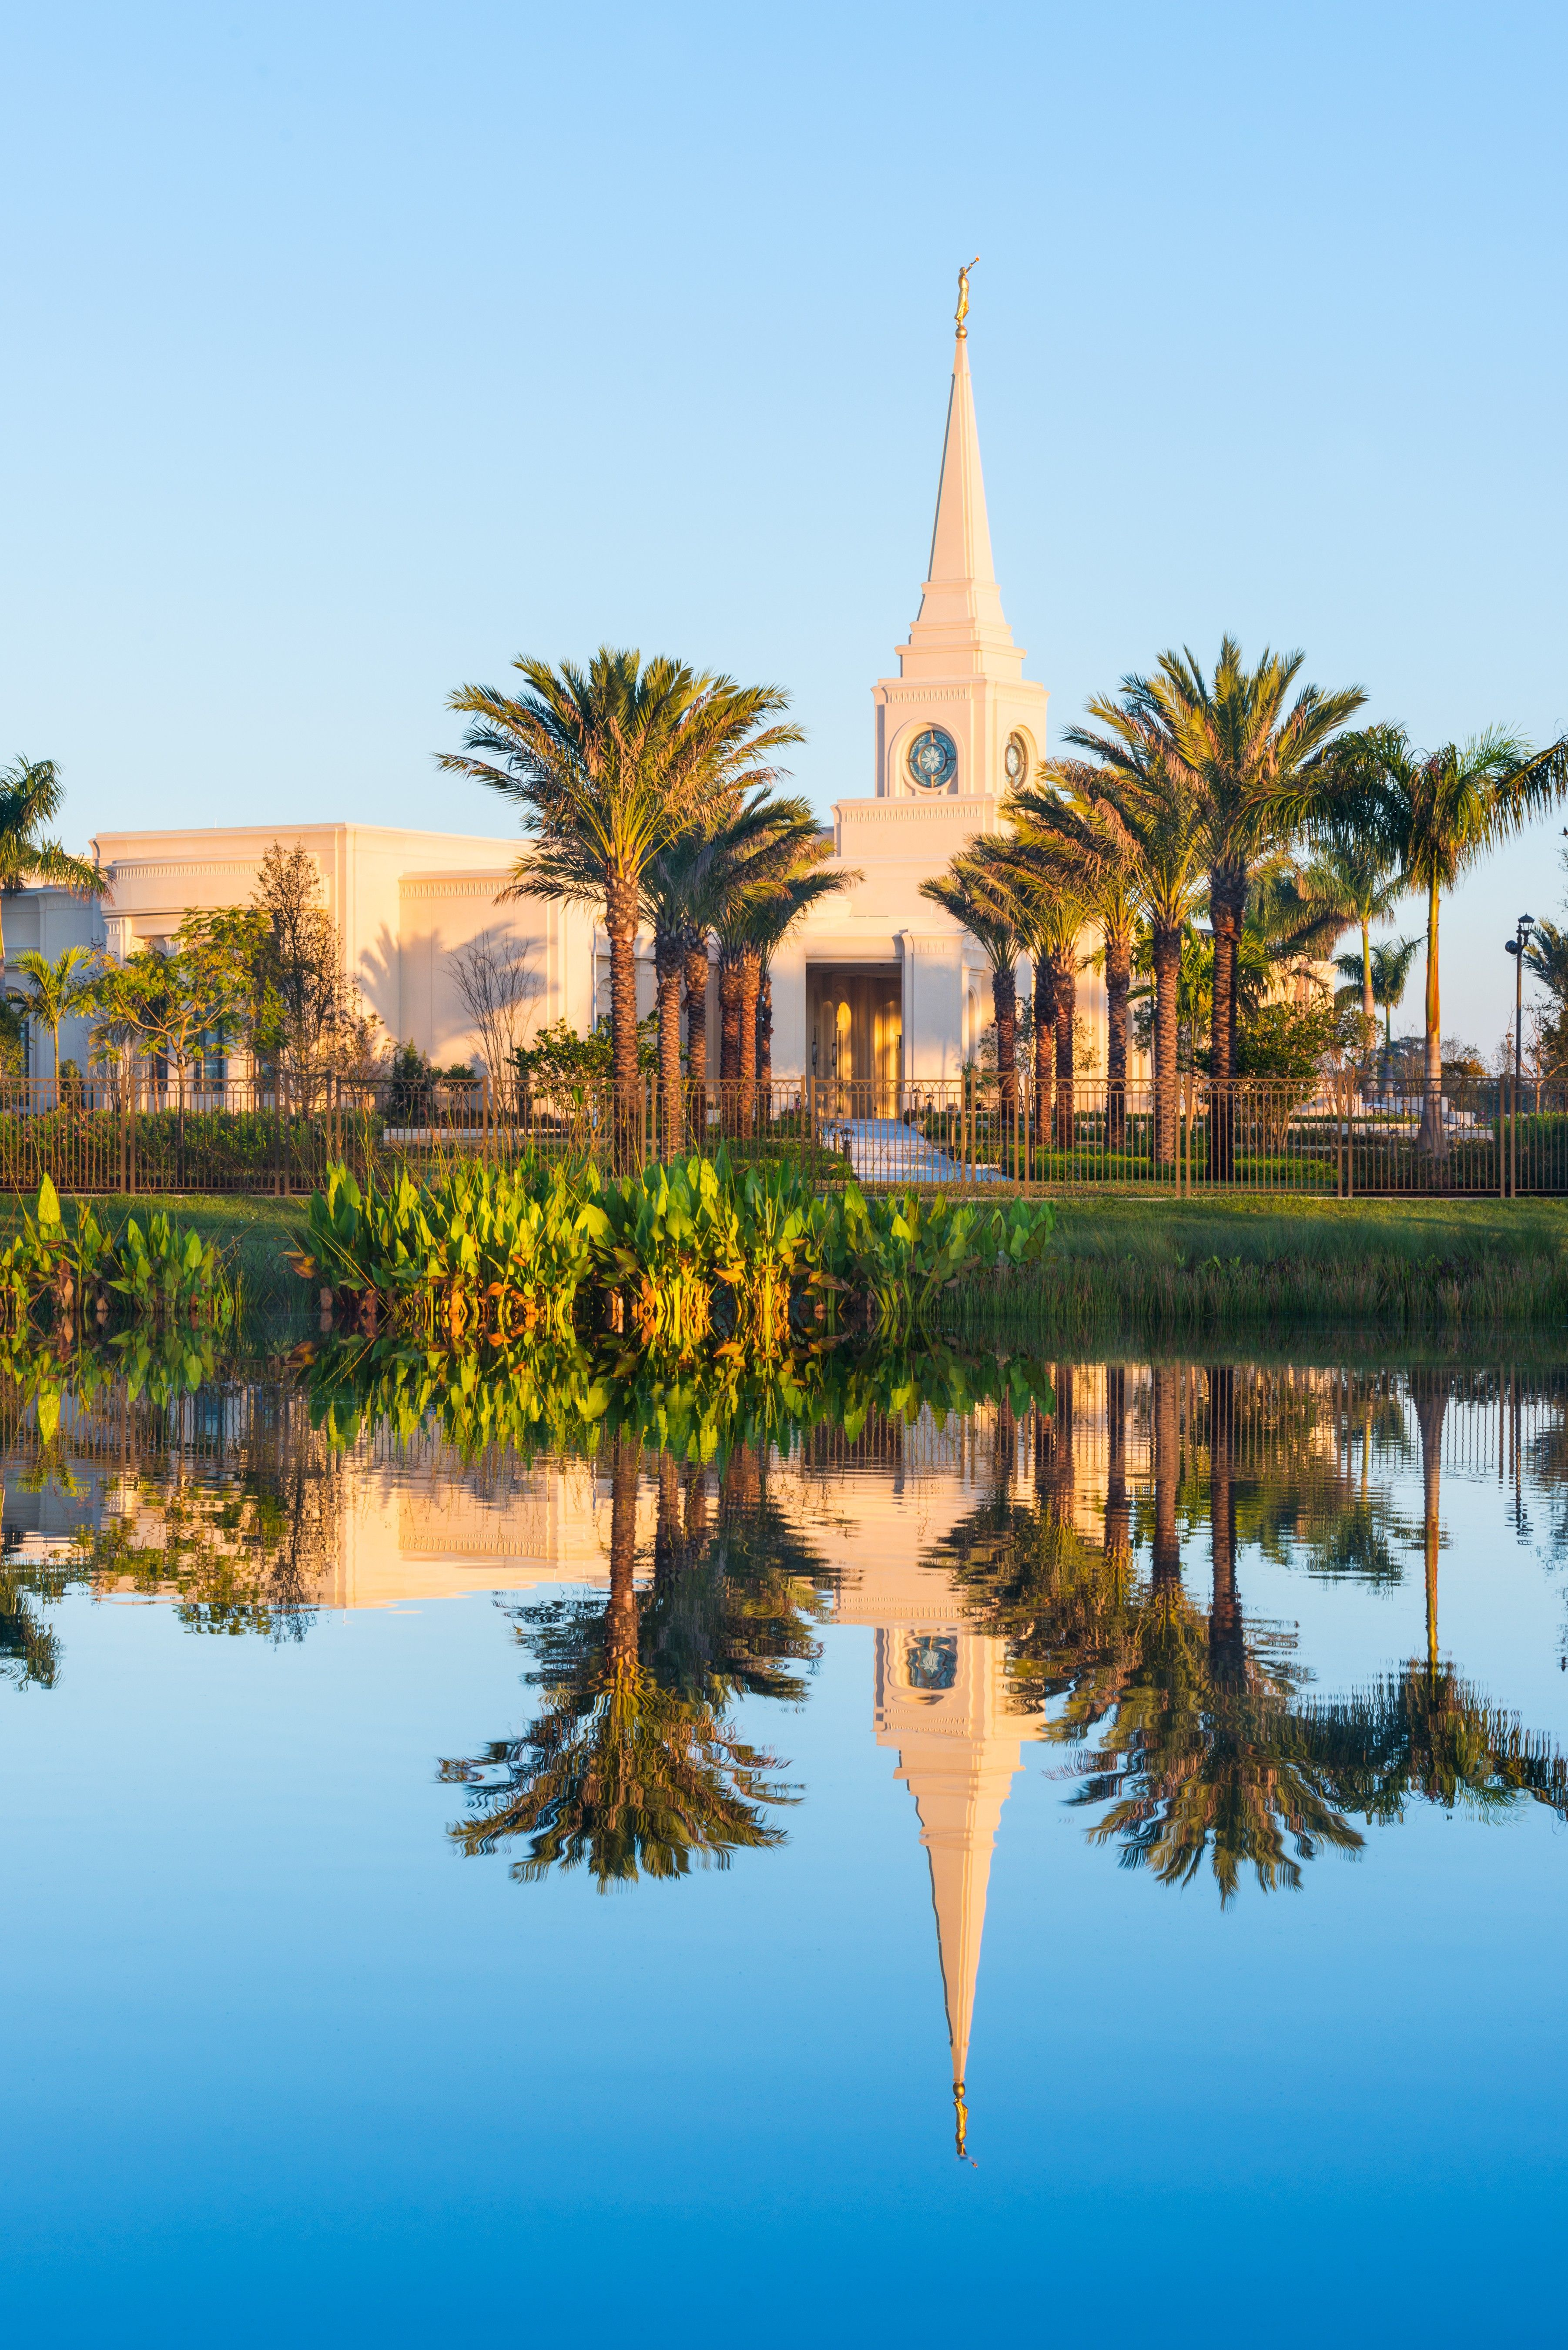 An exterior view of the Fort Lauderdale Florida Temple and grounds in the late evening.